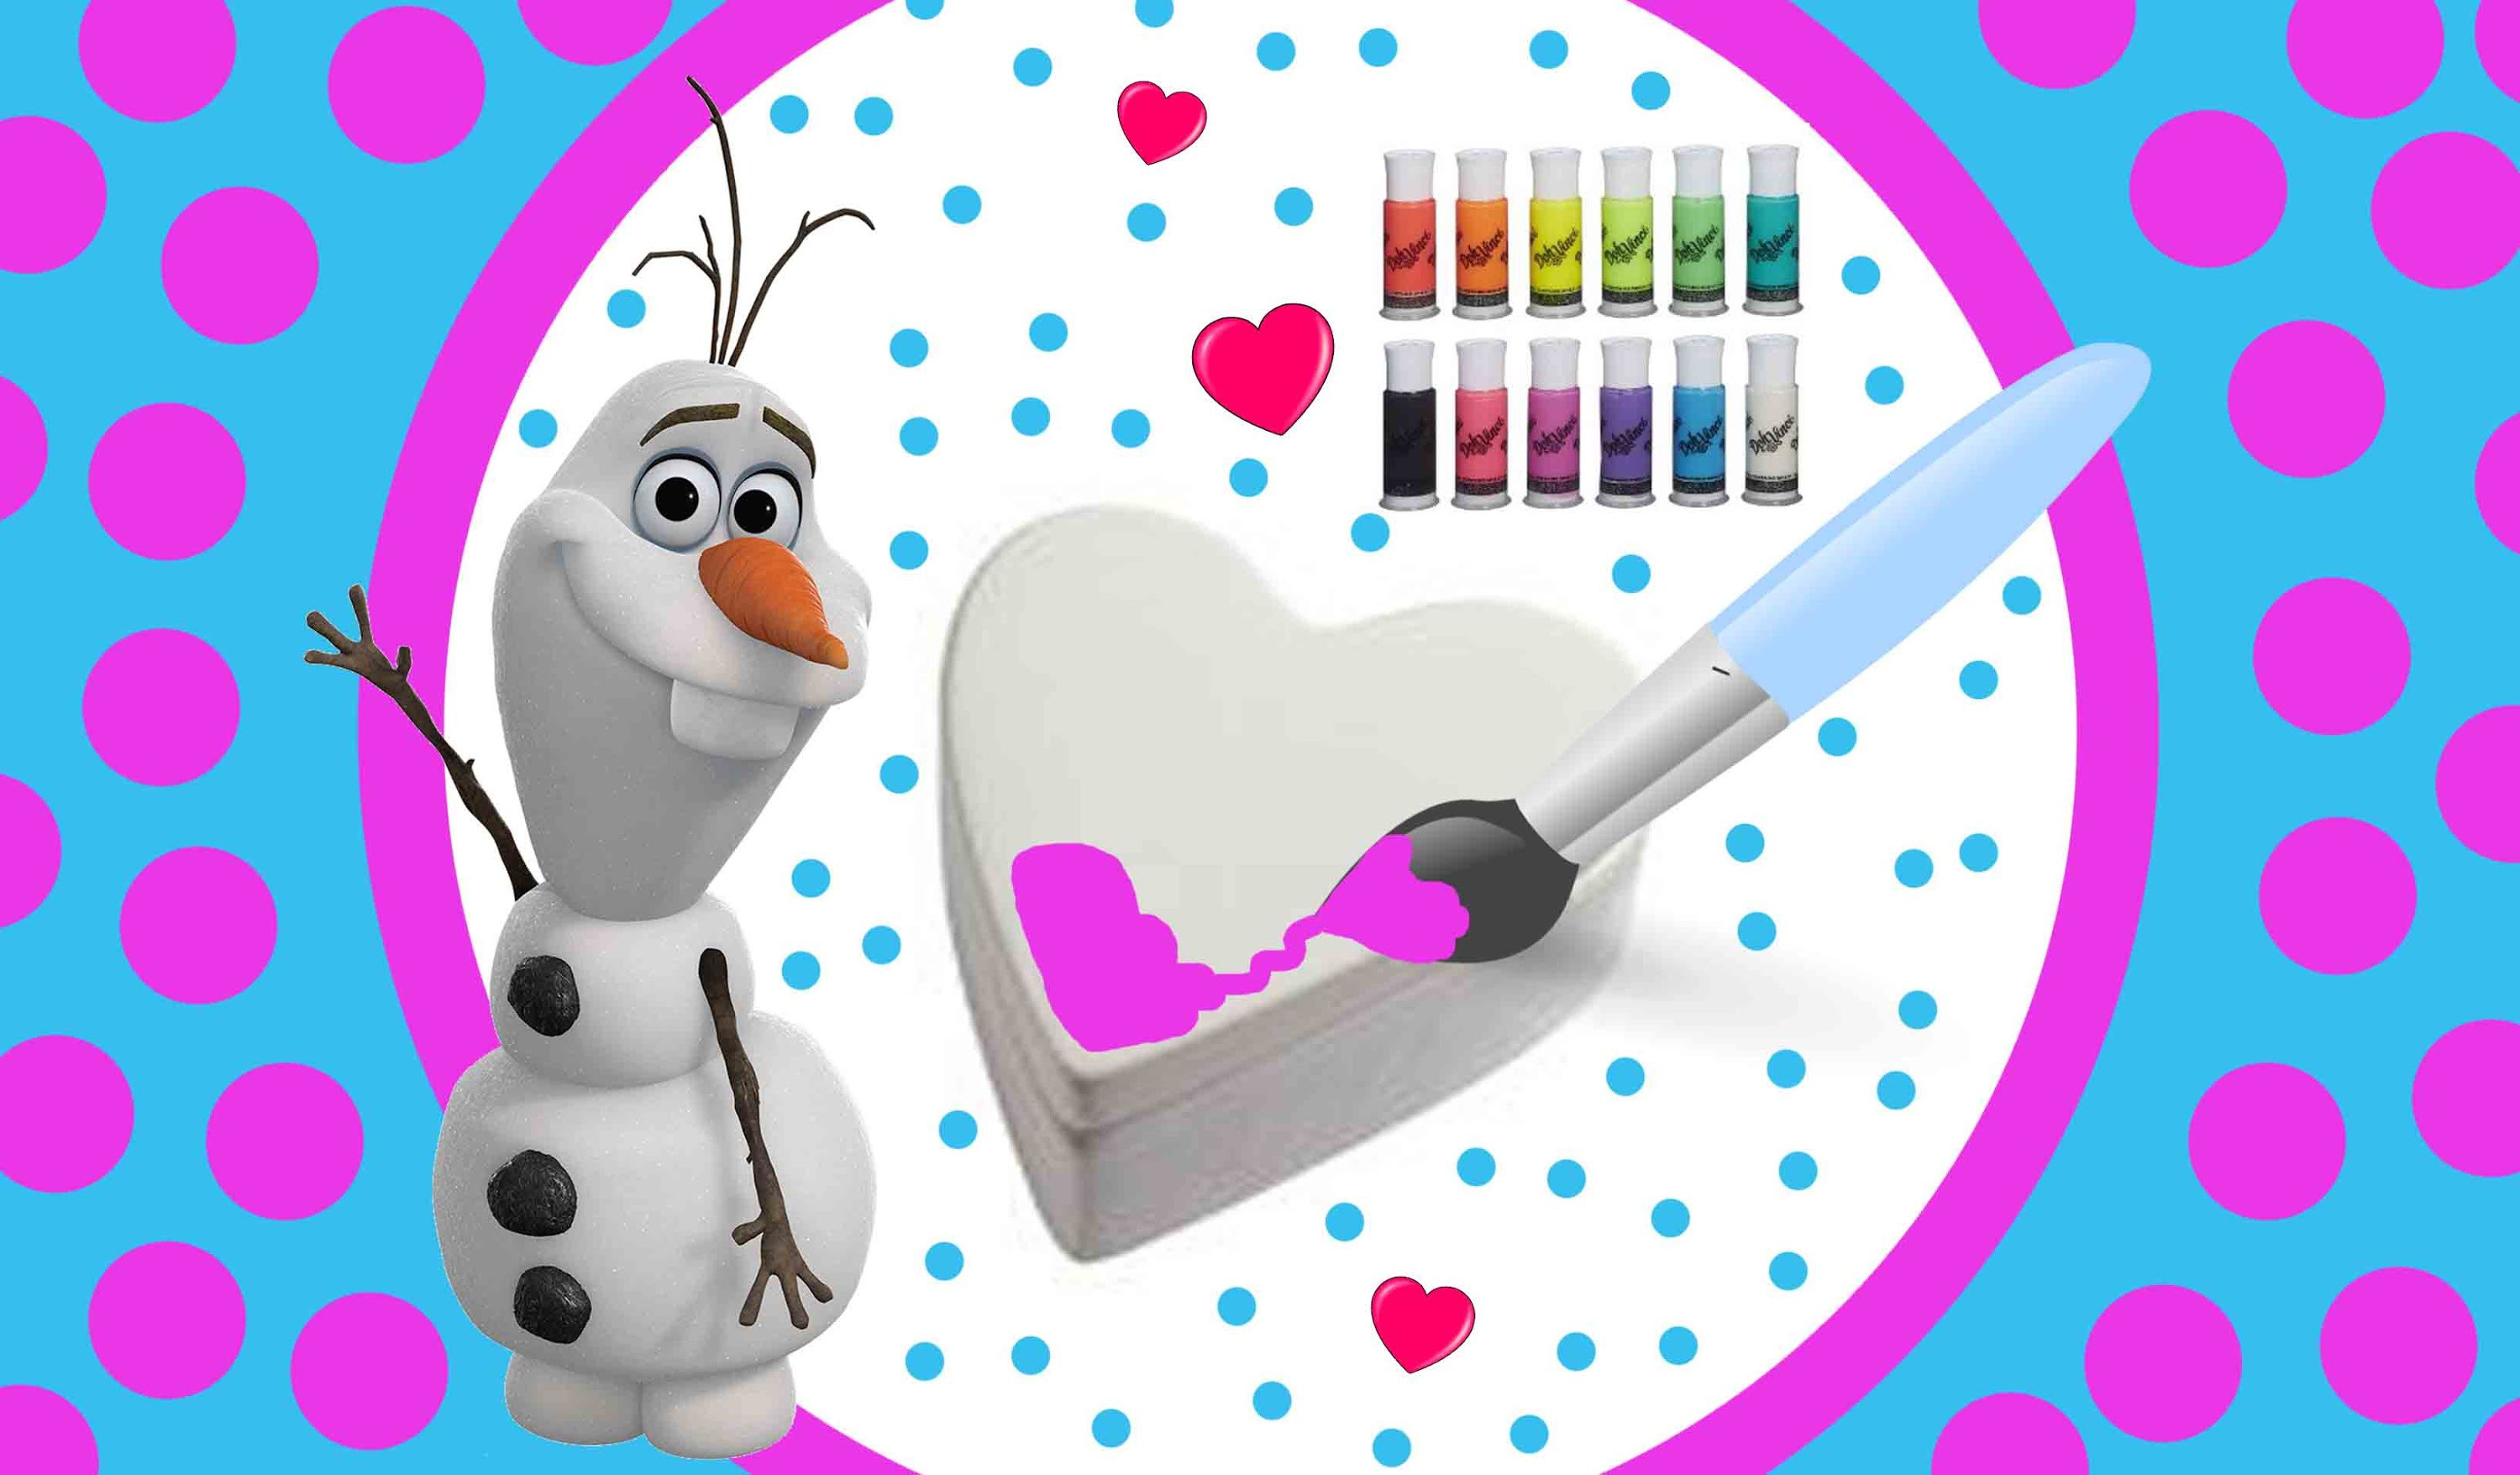 Disney Frozen Olaf DohVinci Doh DIY Heart Shaped Ceramic Craft Disney Frozen Mystery Minis Elsa